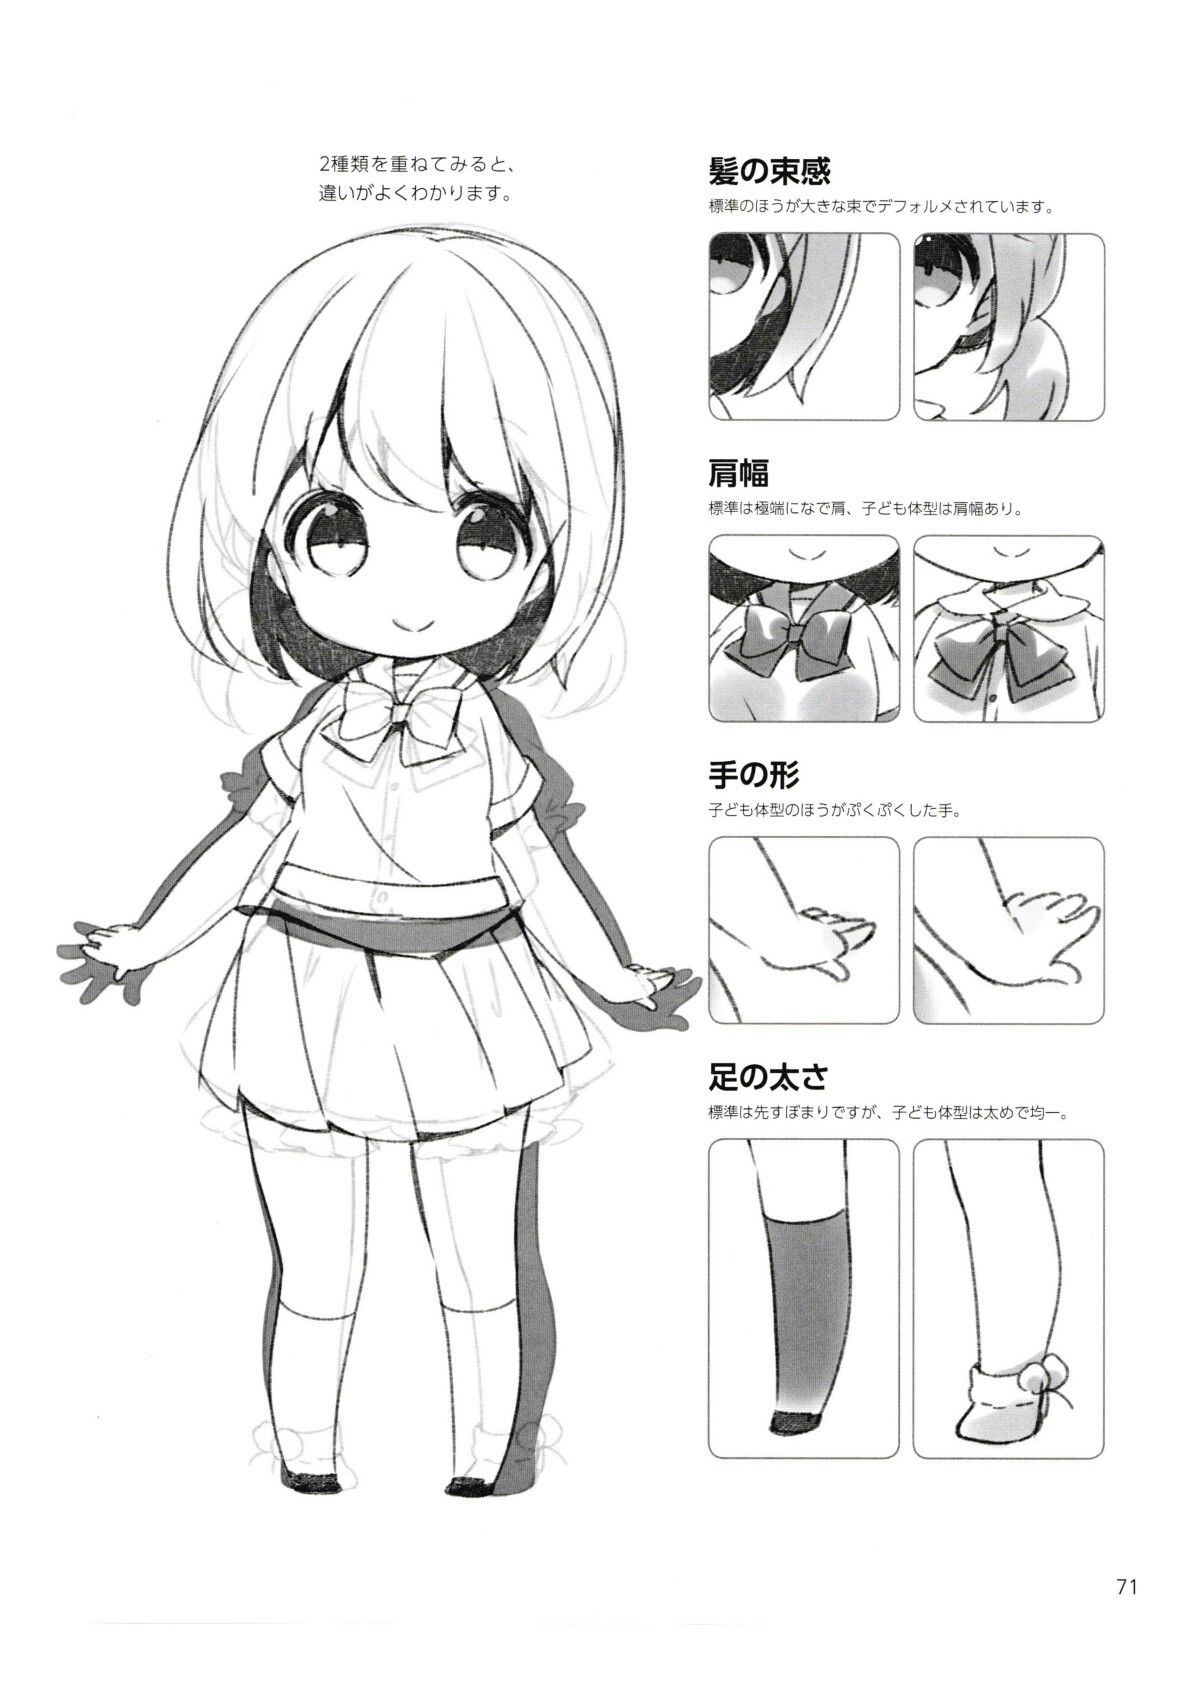 How To Draw Chibis 71 Anime Drawing Books Anime Drawings Sketches Anime Drawing Styles